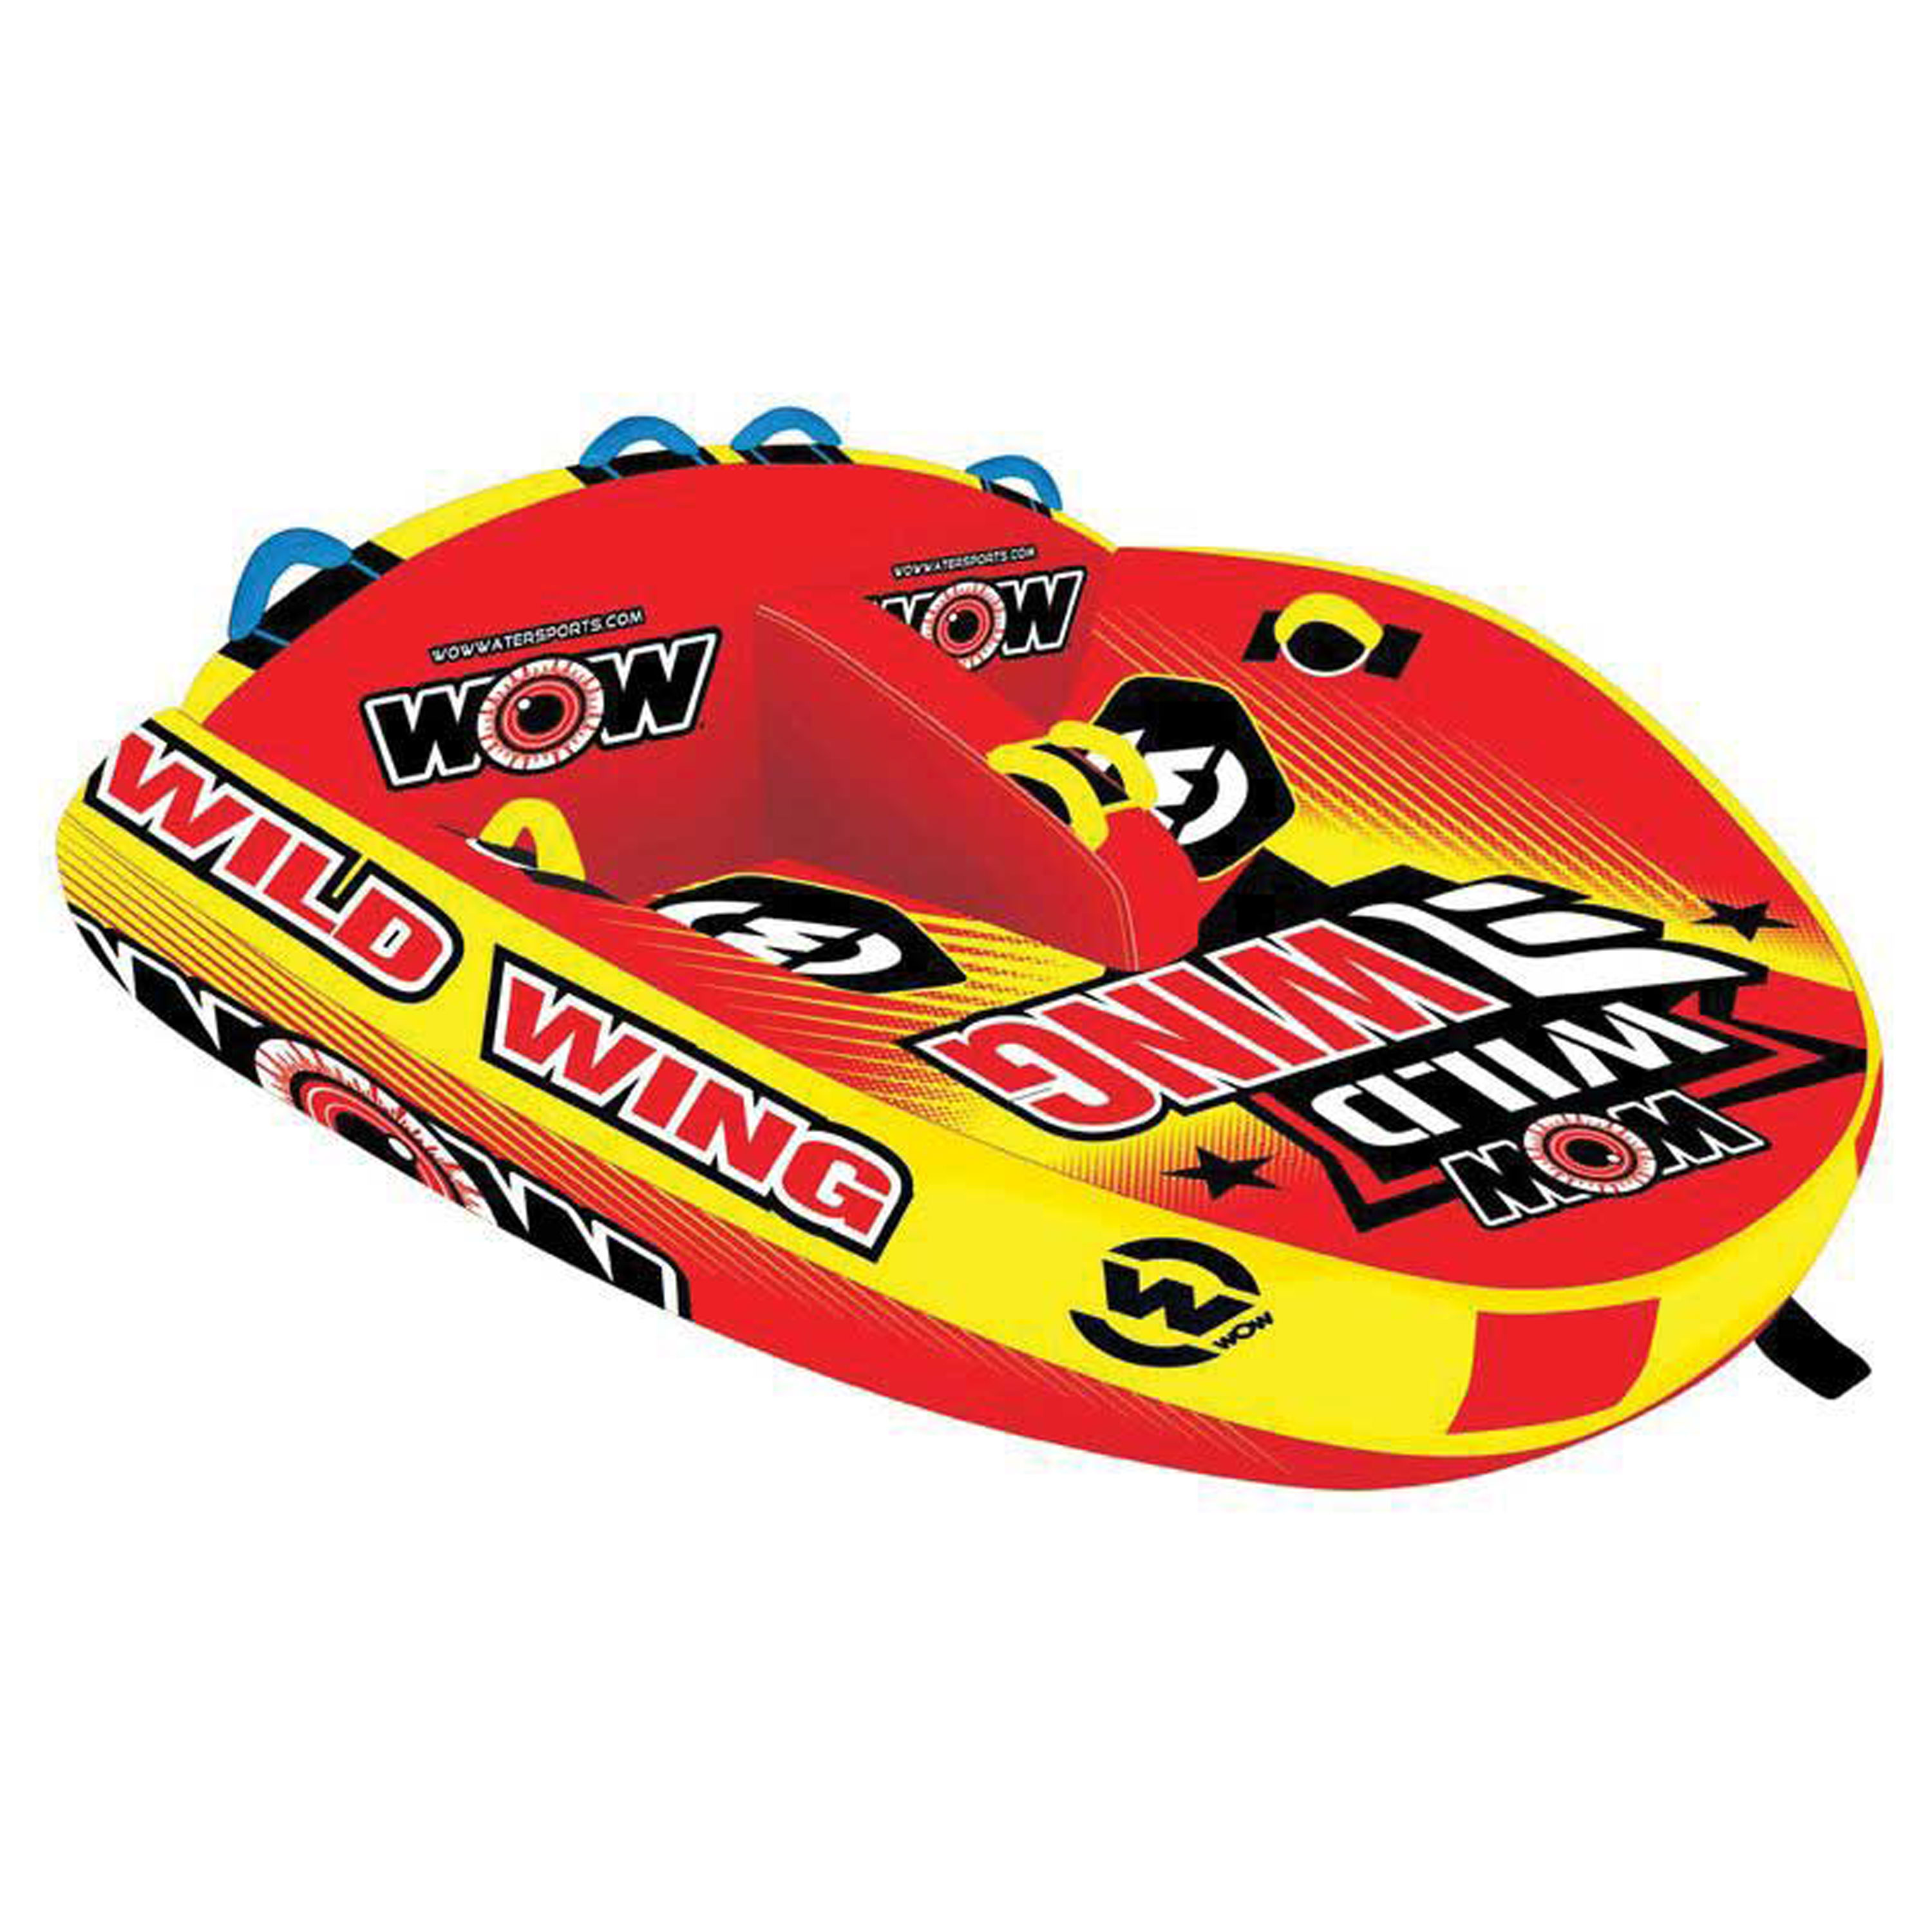 Wow Sports 18-1120 Towable Wild Wing 2 Person